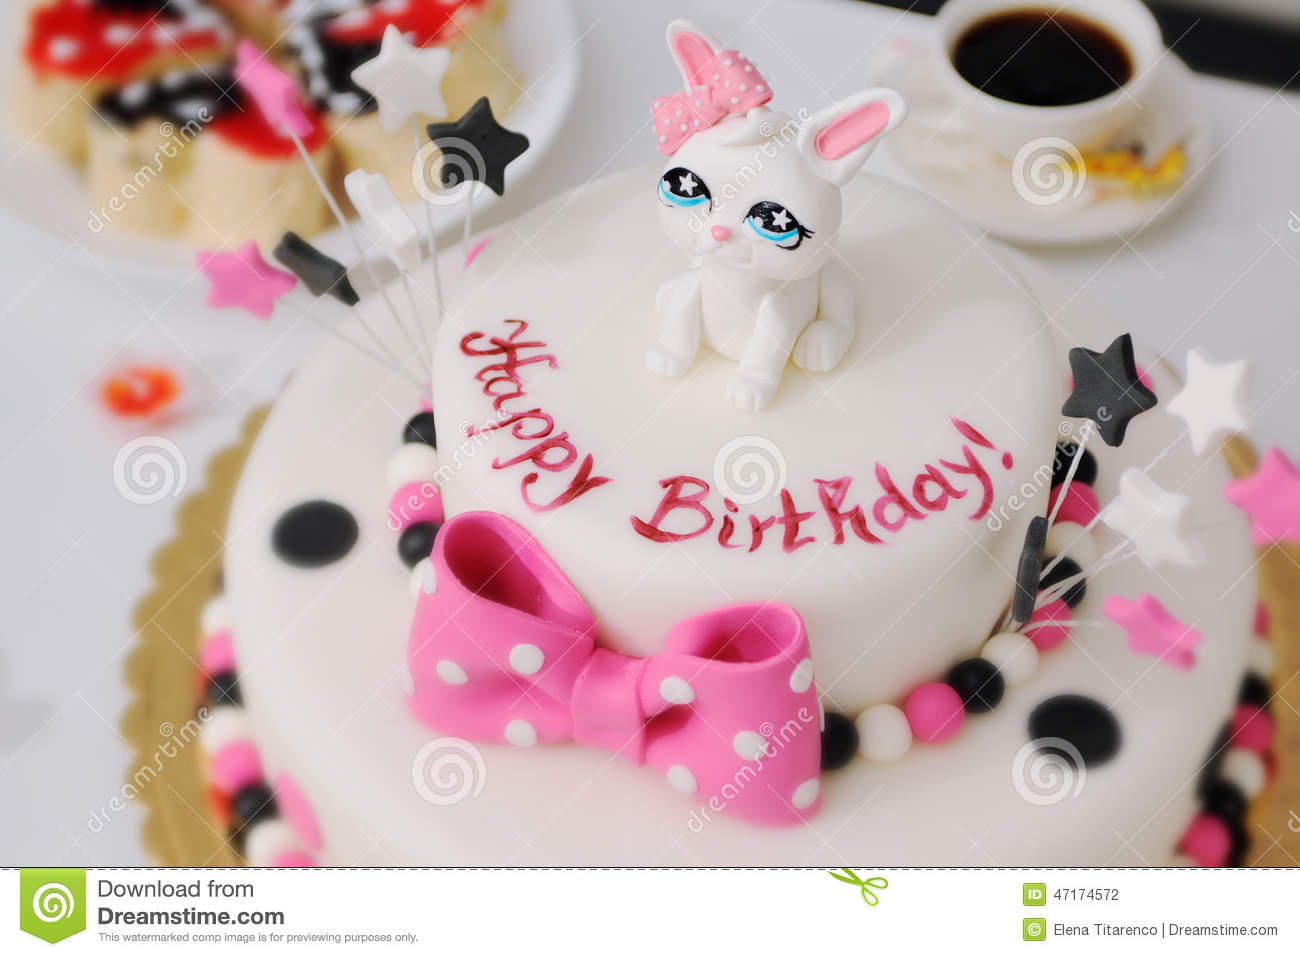 Happy Birthday Cake Pictures Birthday Cake Stock Images Download 142632 Photos